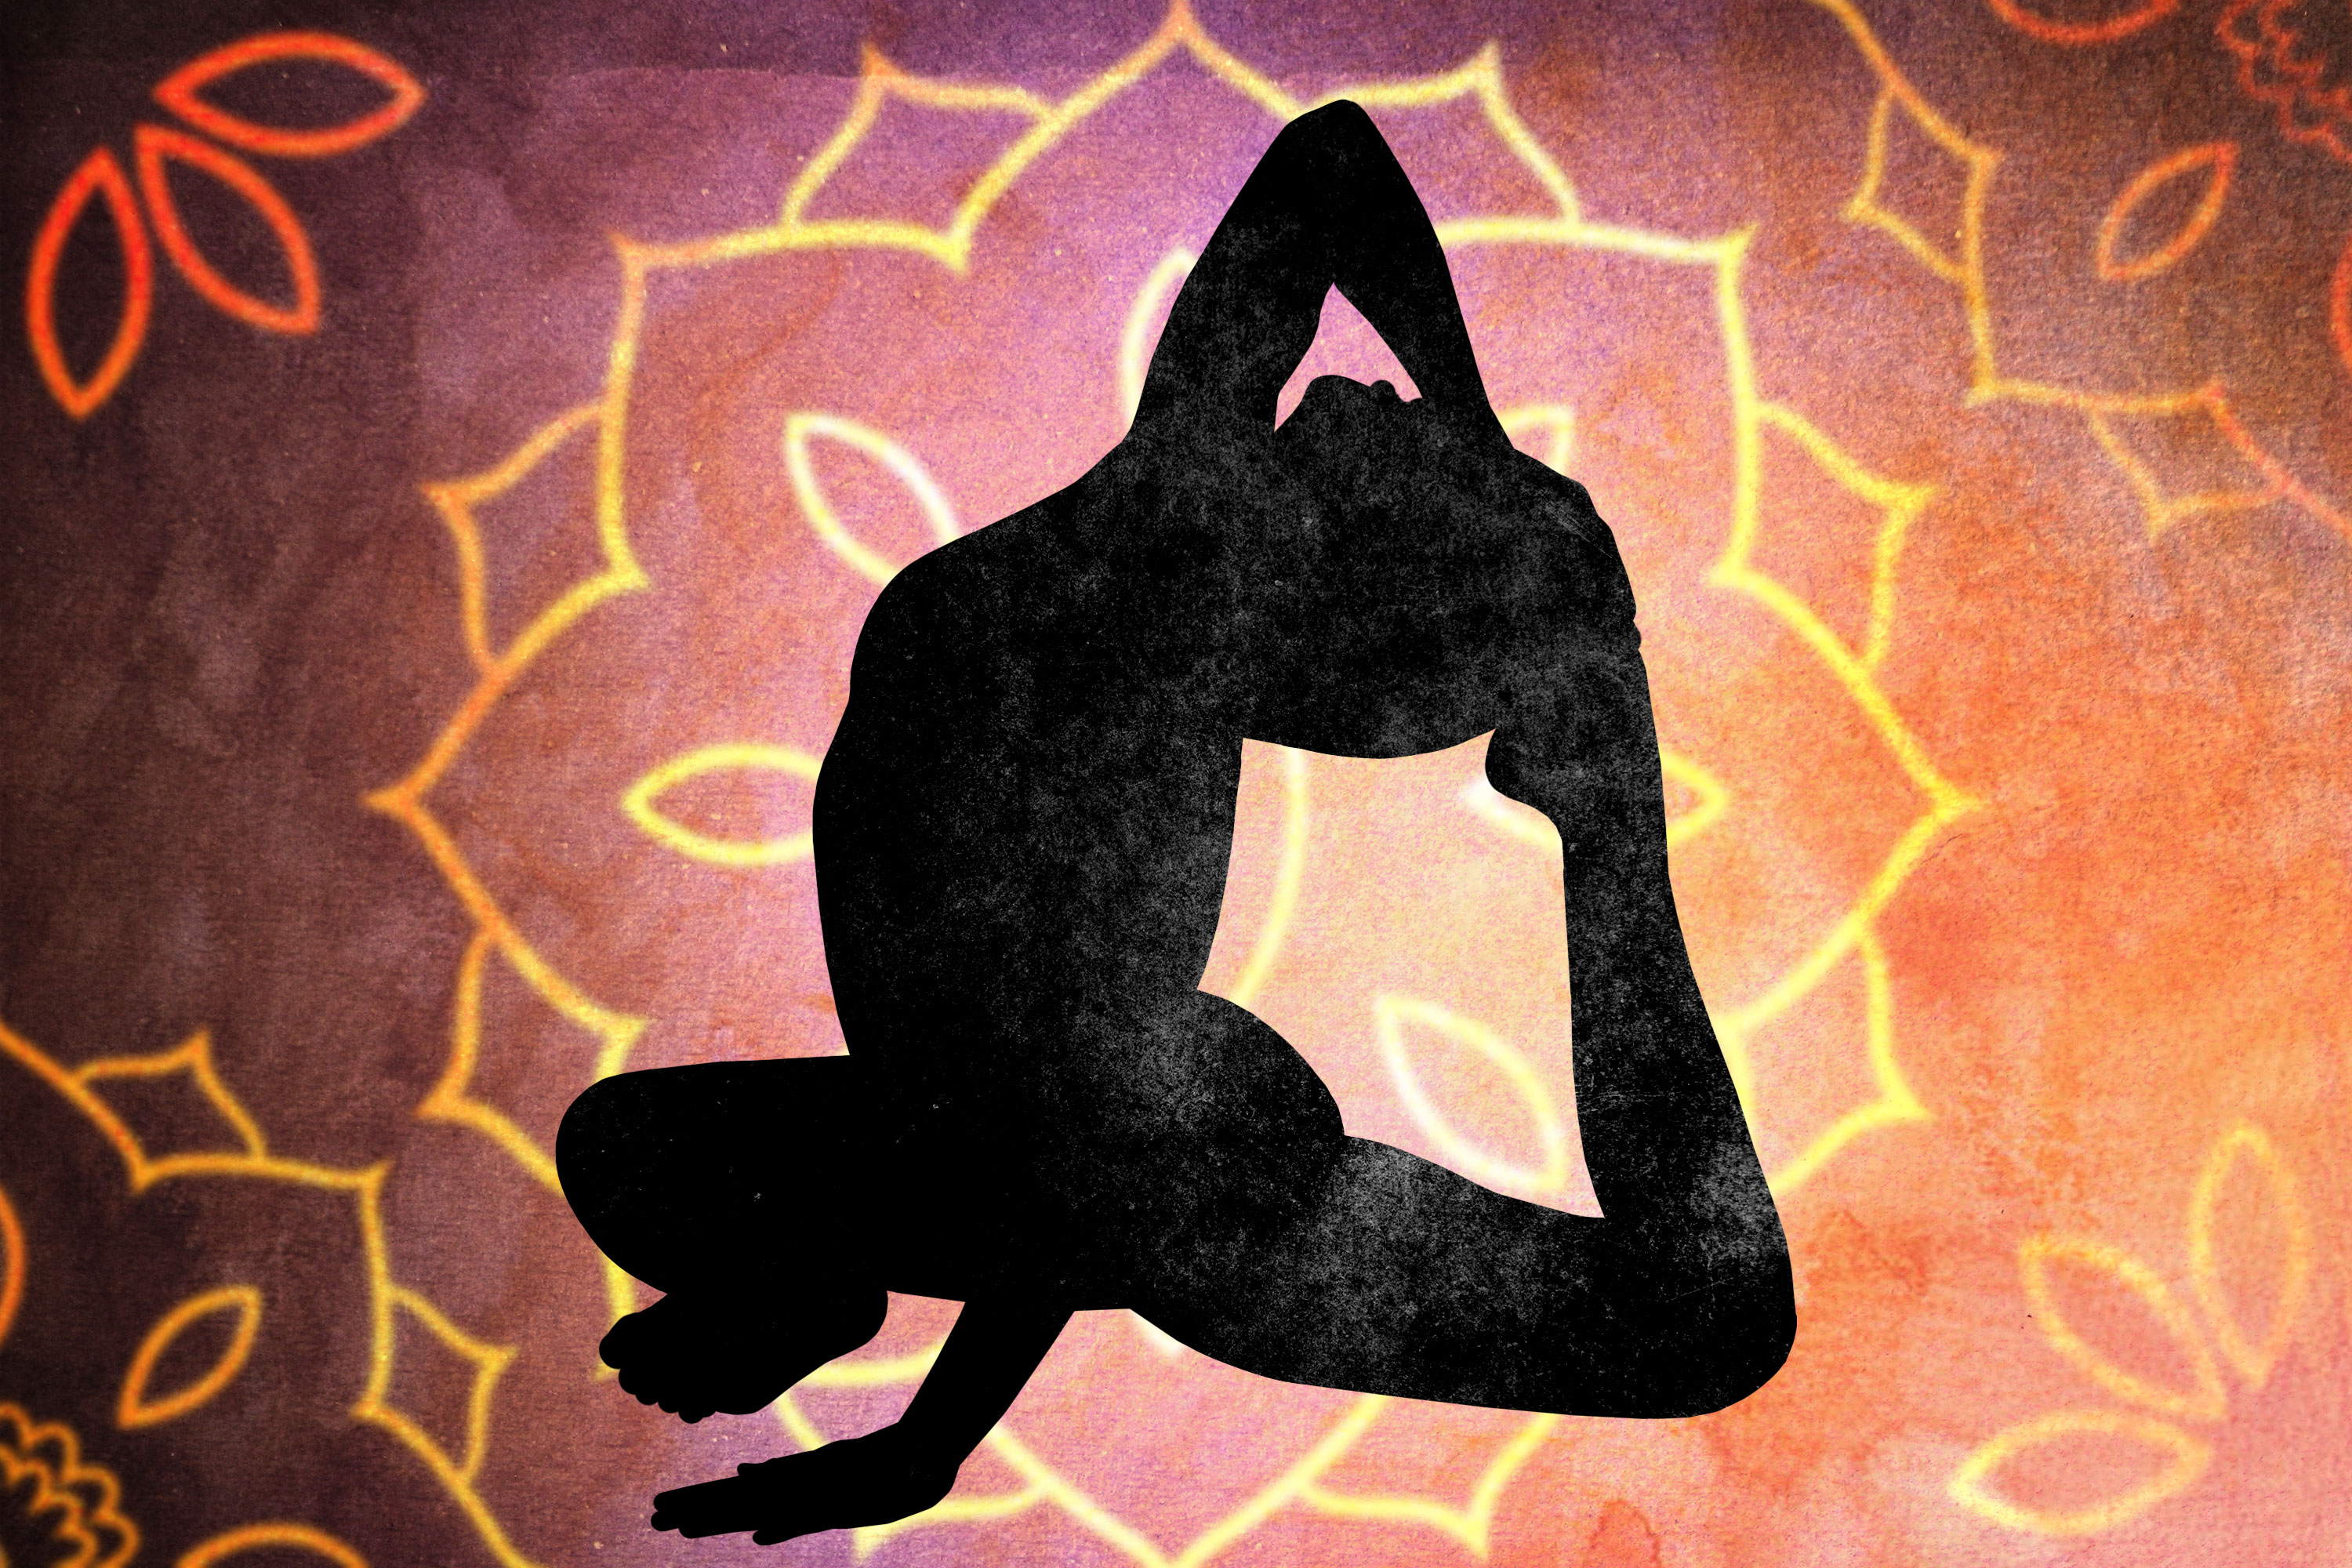 The silhouette of someone in a yoga pose